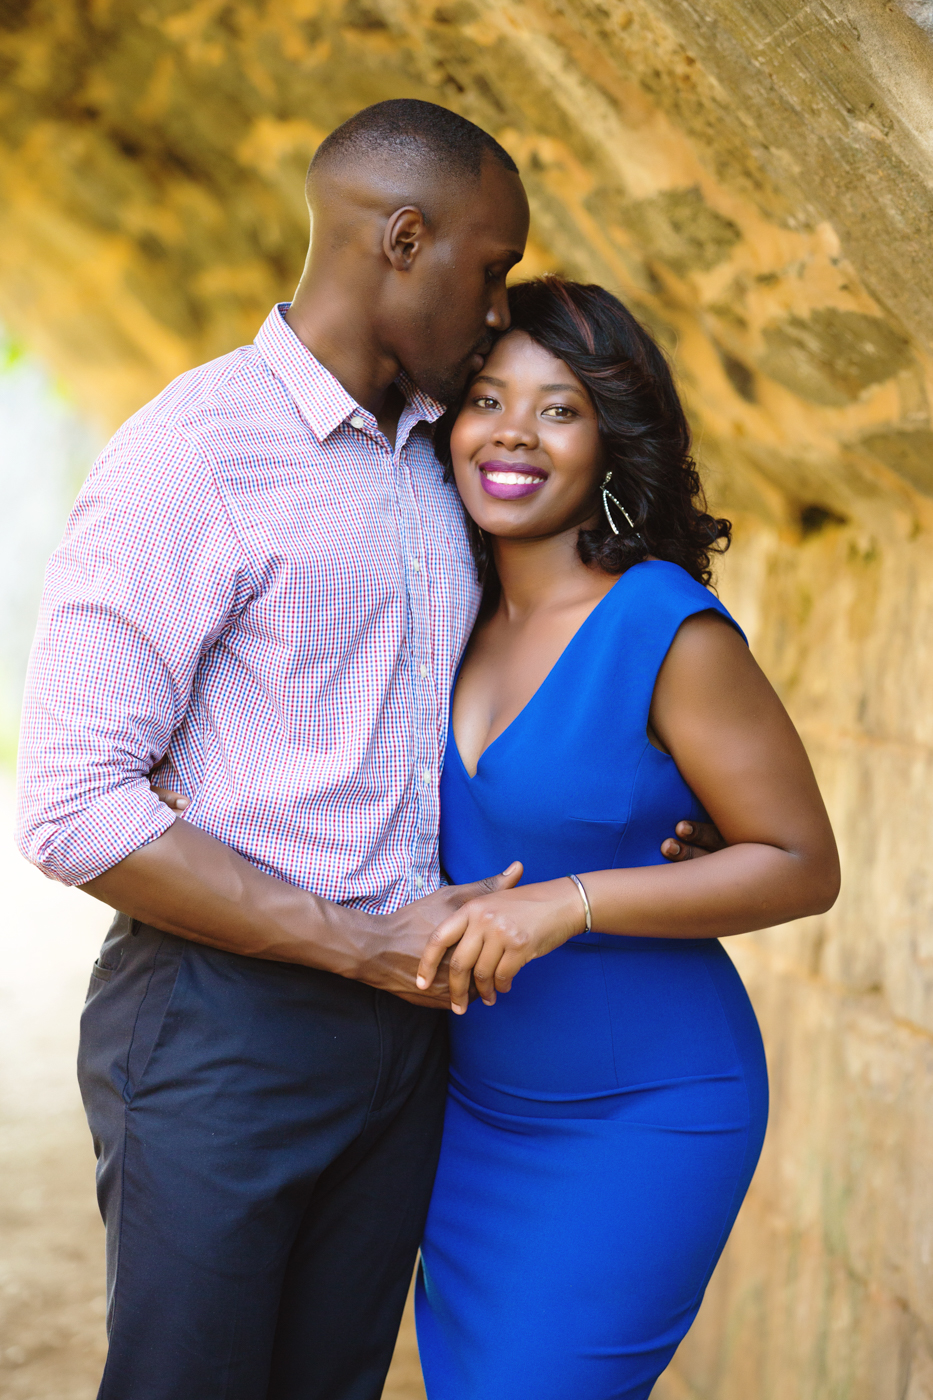 Jessica-Daniel-Engagement-Photo-Shoot-in-the-heart-of-Washington-DC-Ksenia-Pro-Photography-7